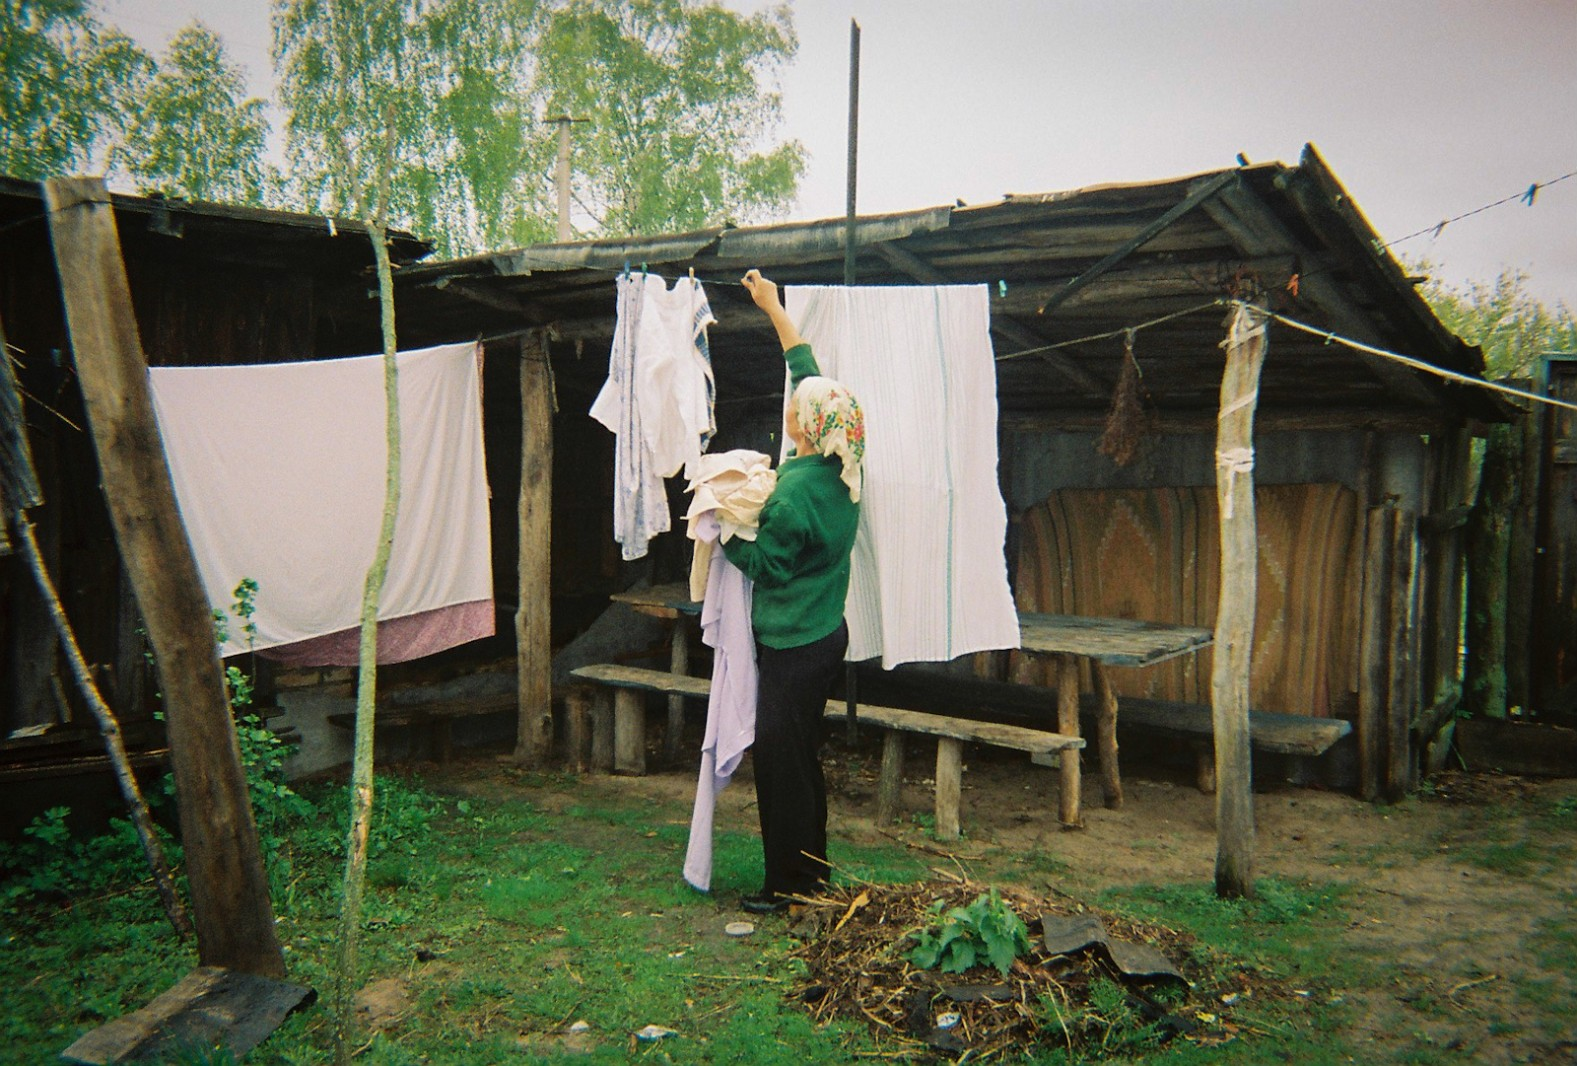 A woman hangs washing in her garden near Chernobyl